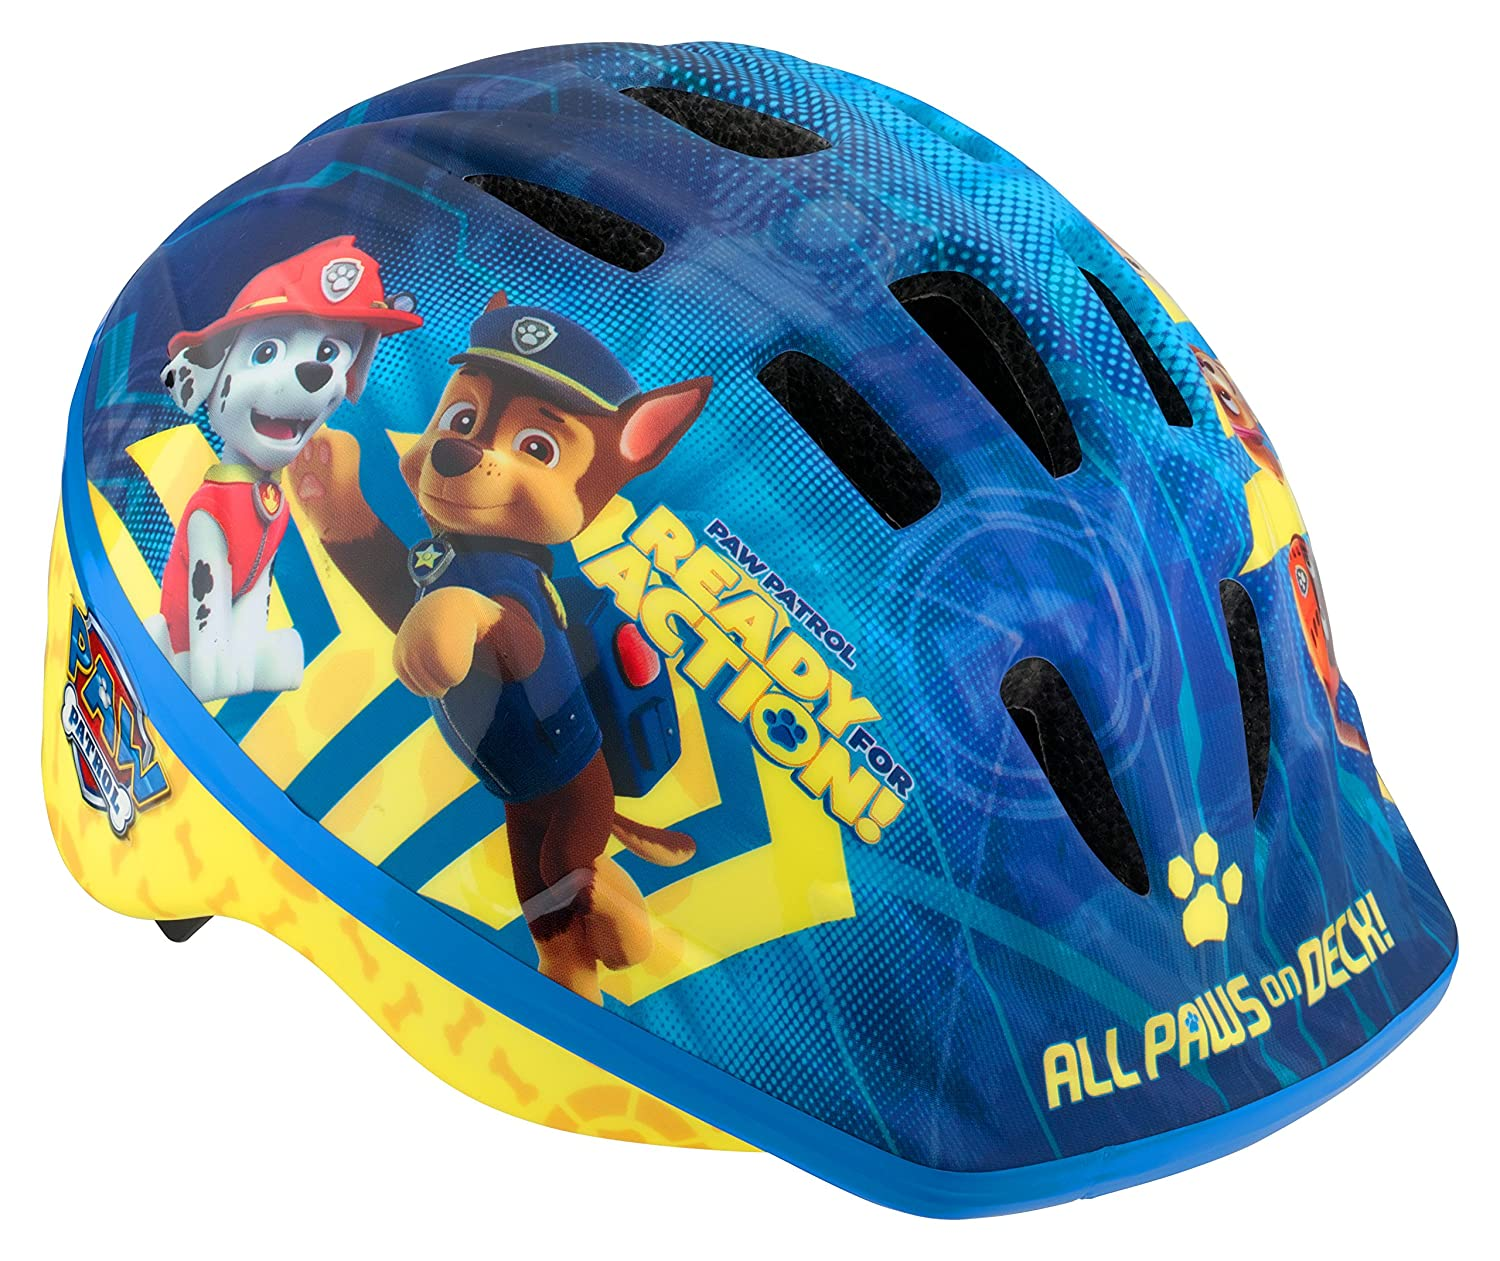 Paw Patrol Toddler Bike Helmet